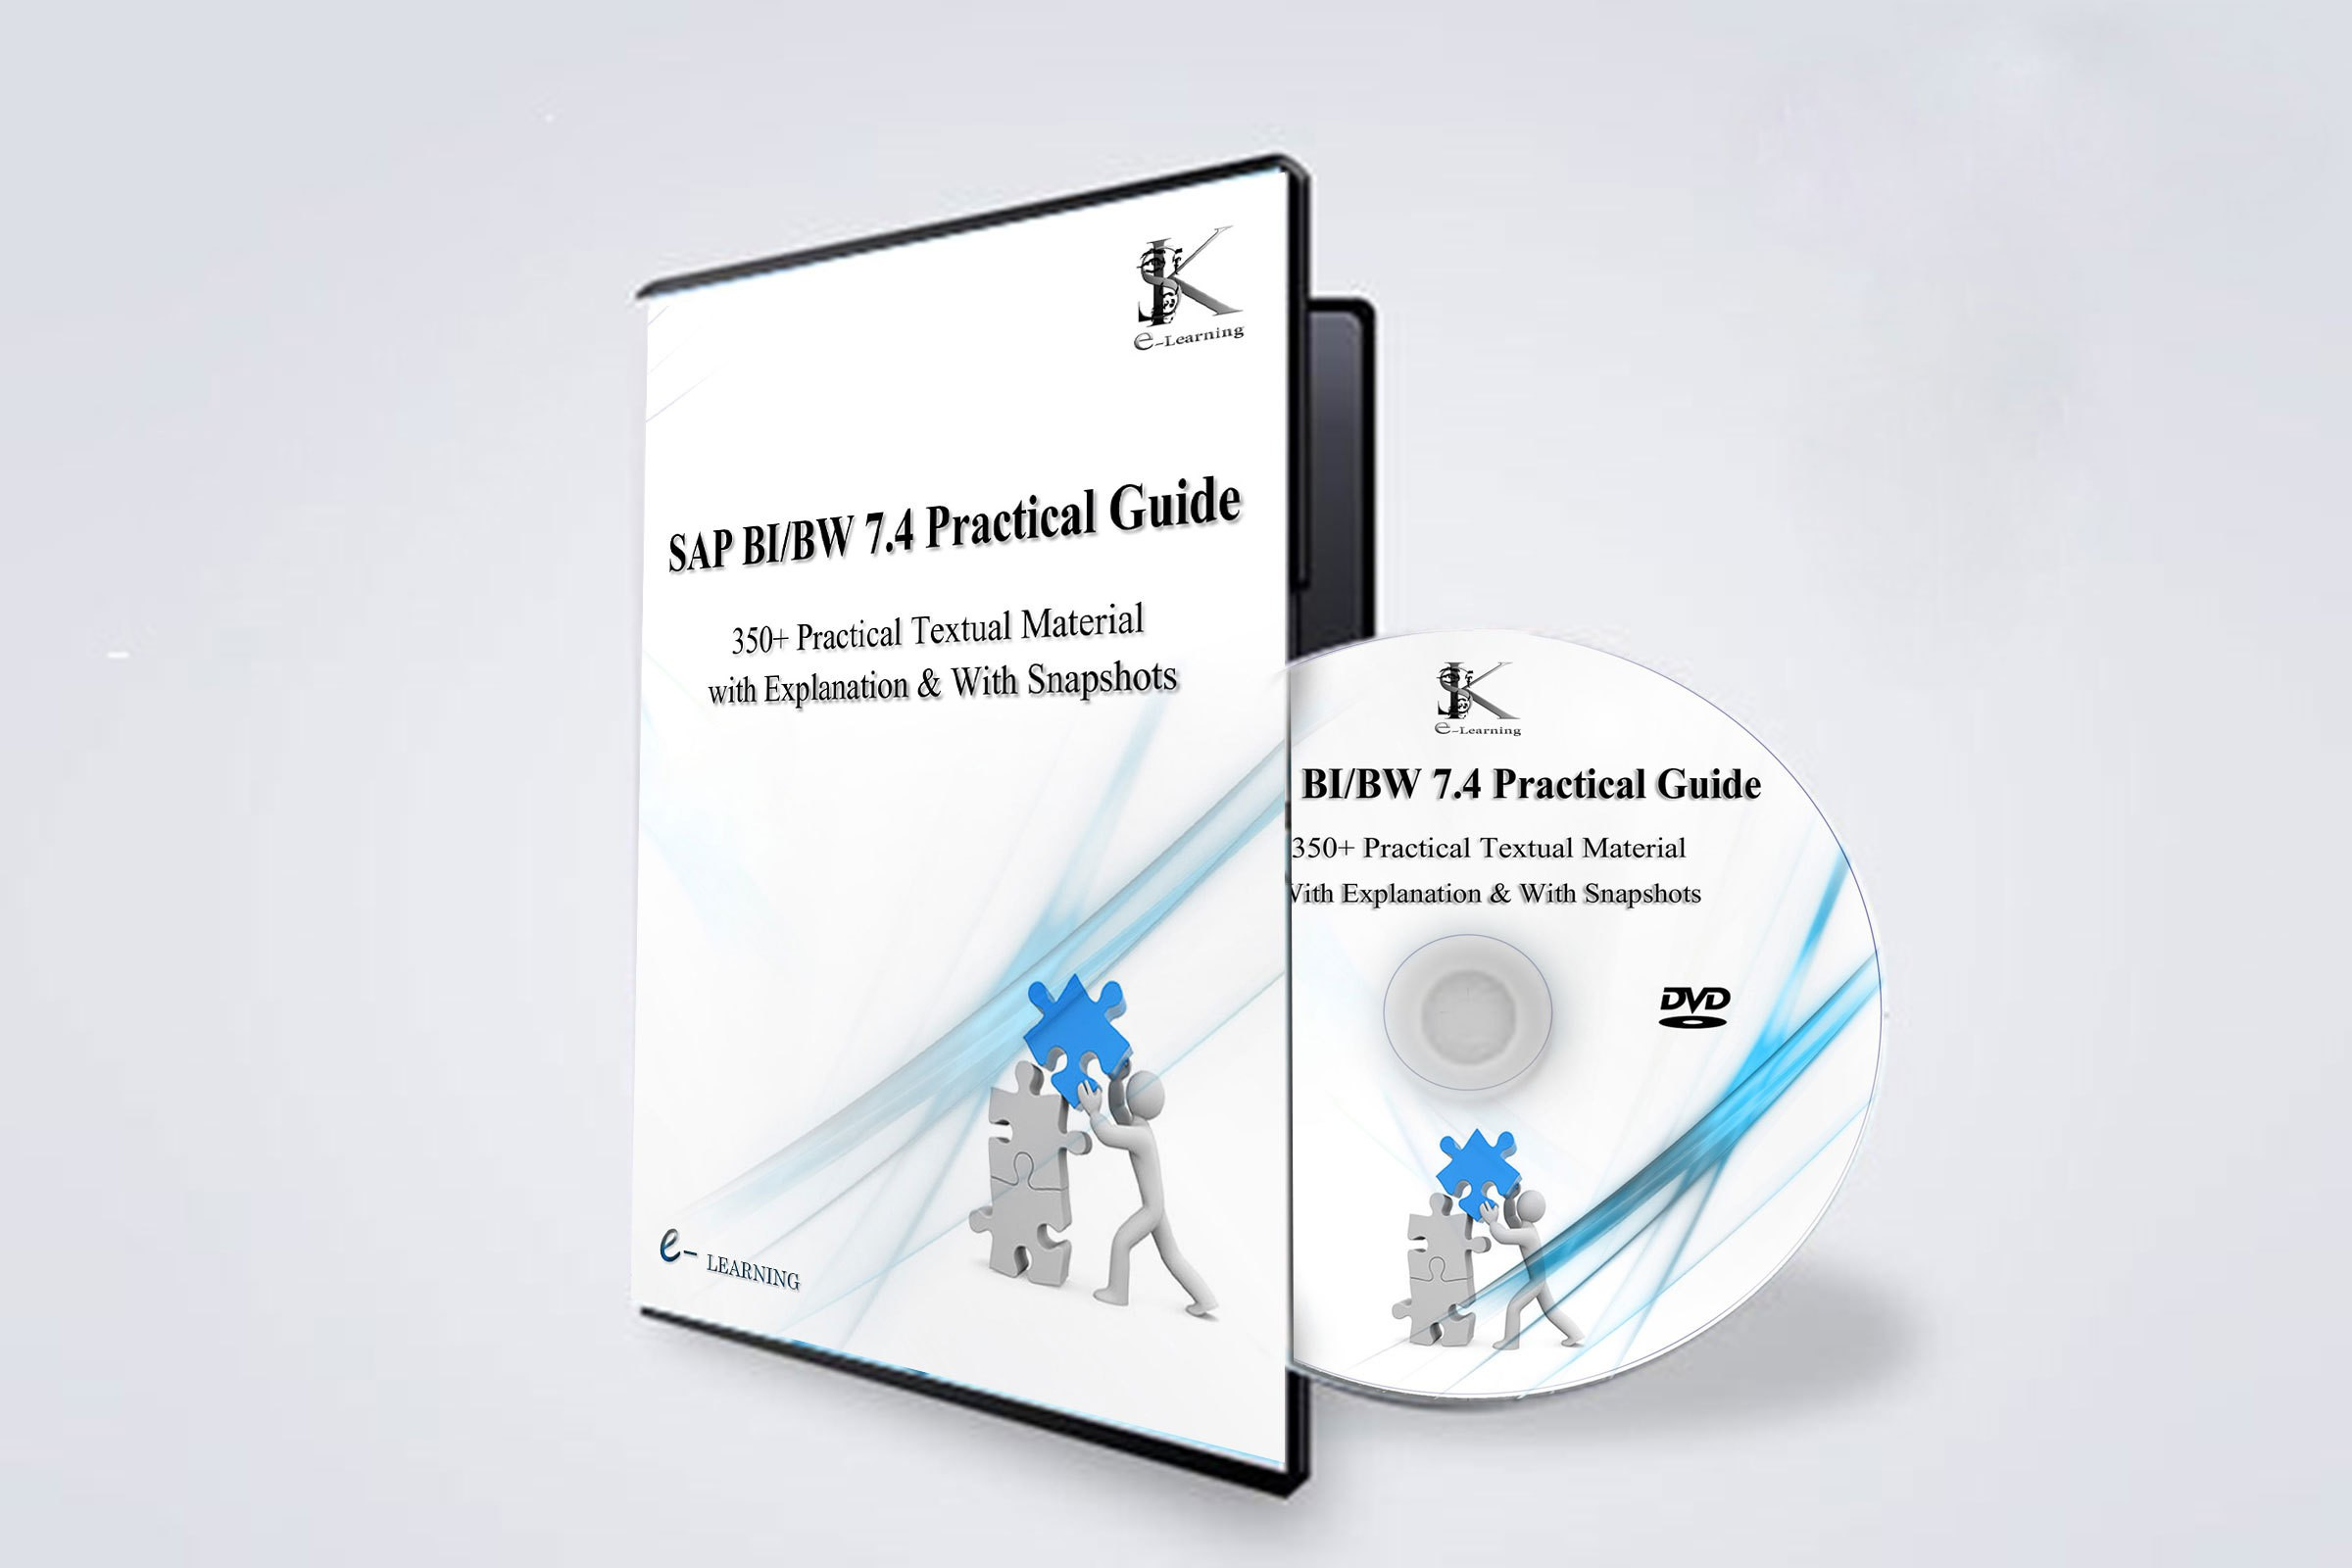 KS Sap Bw 7.4 Practical Guide(CD)